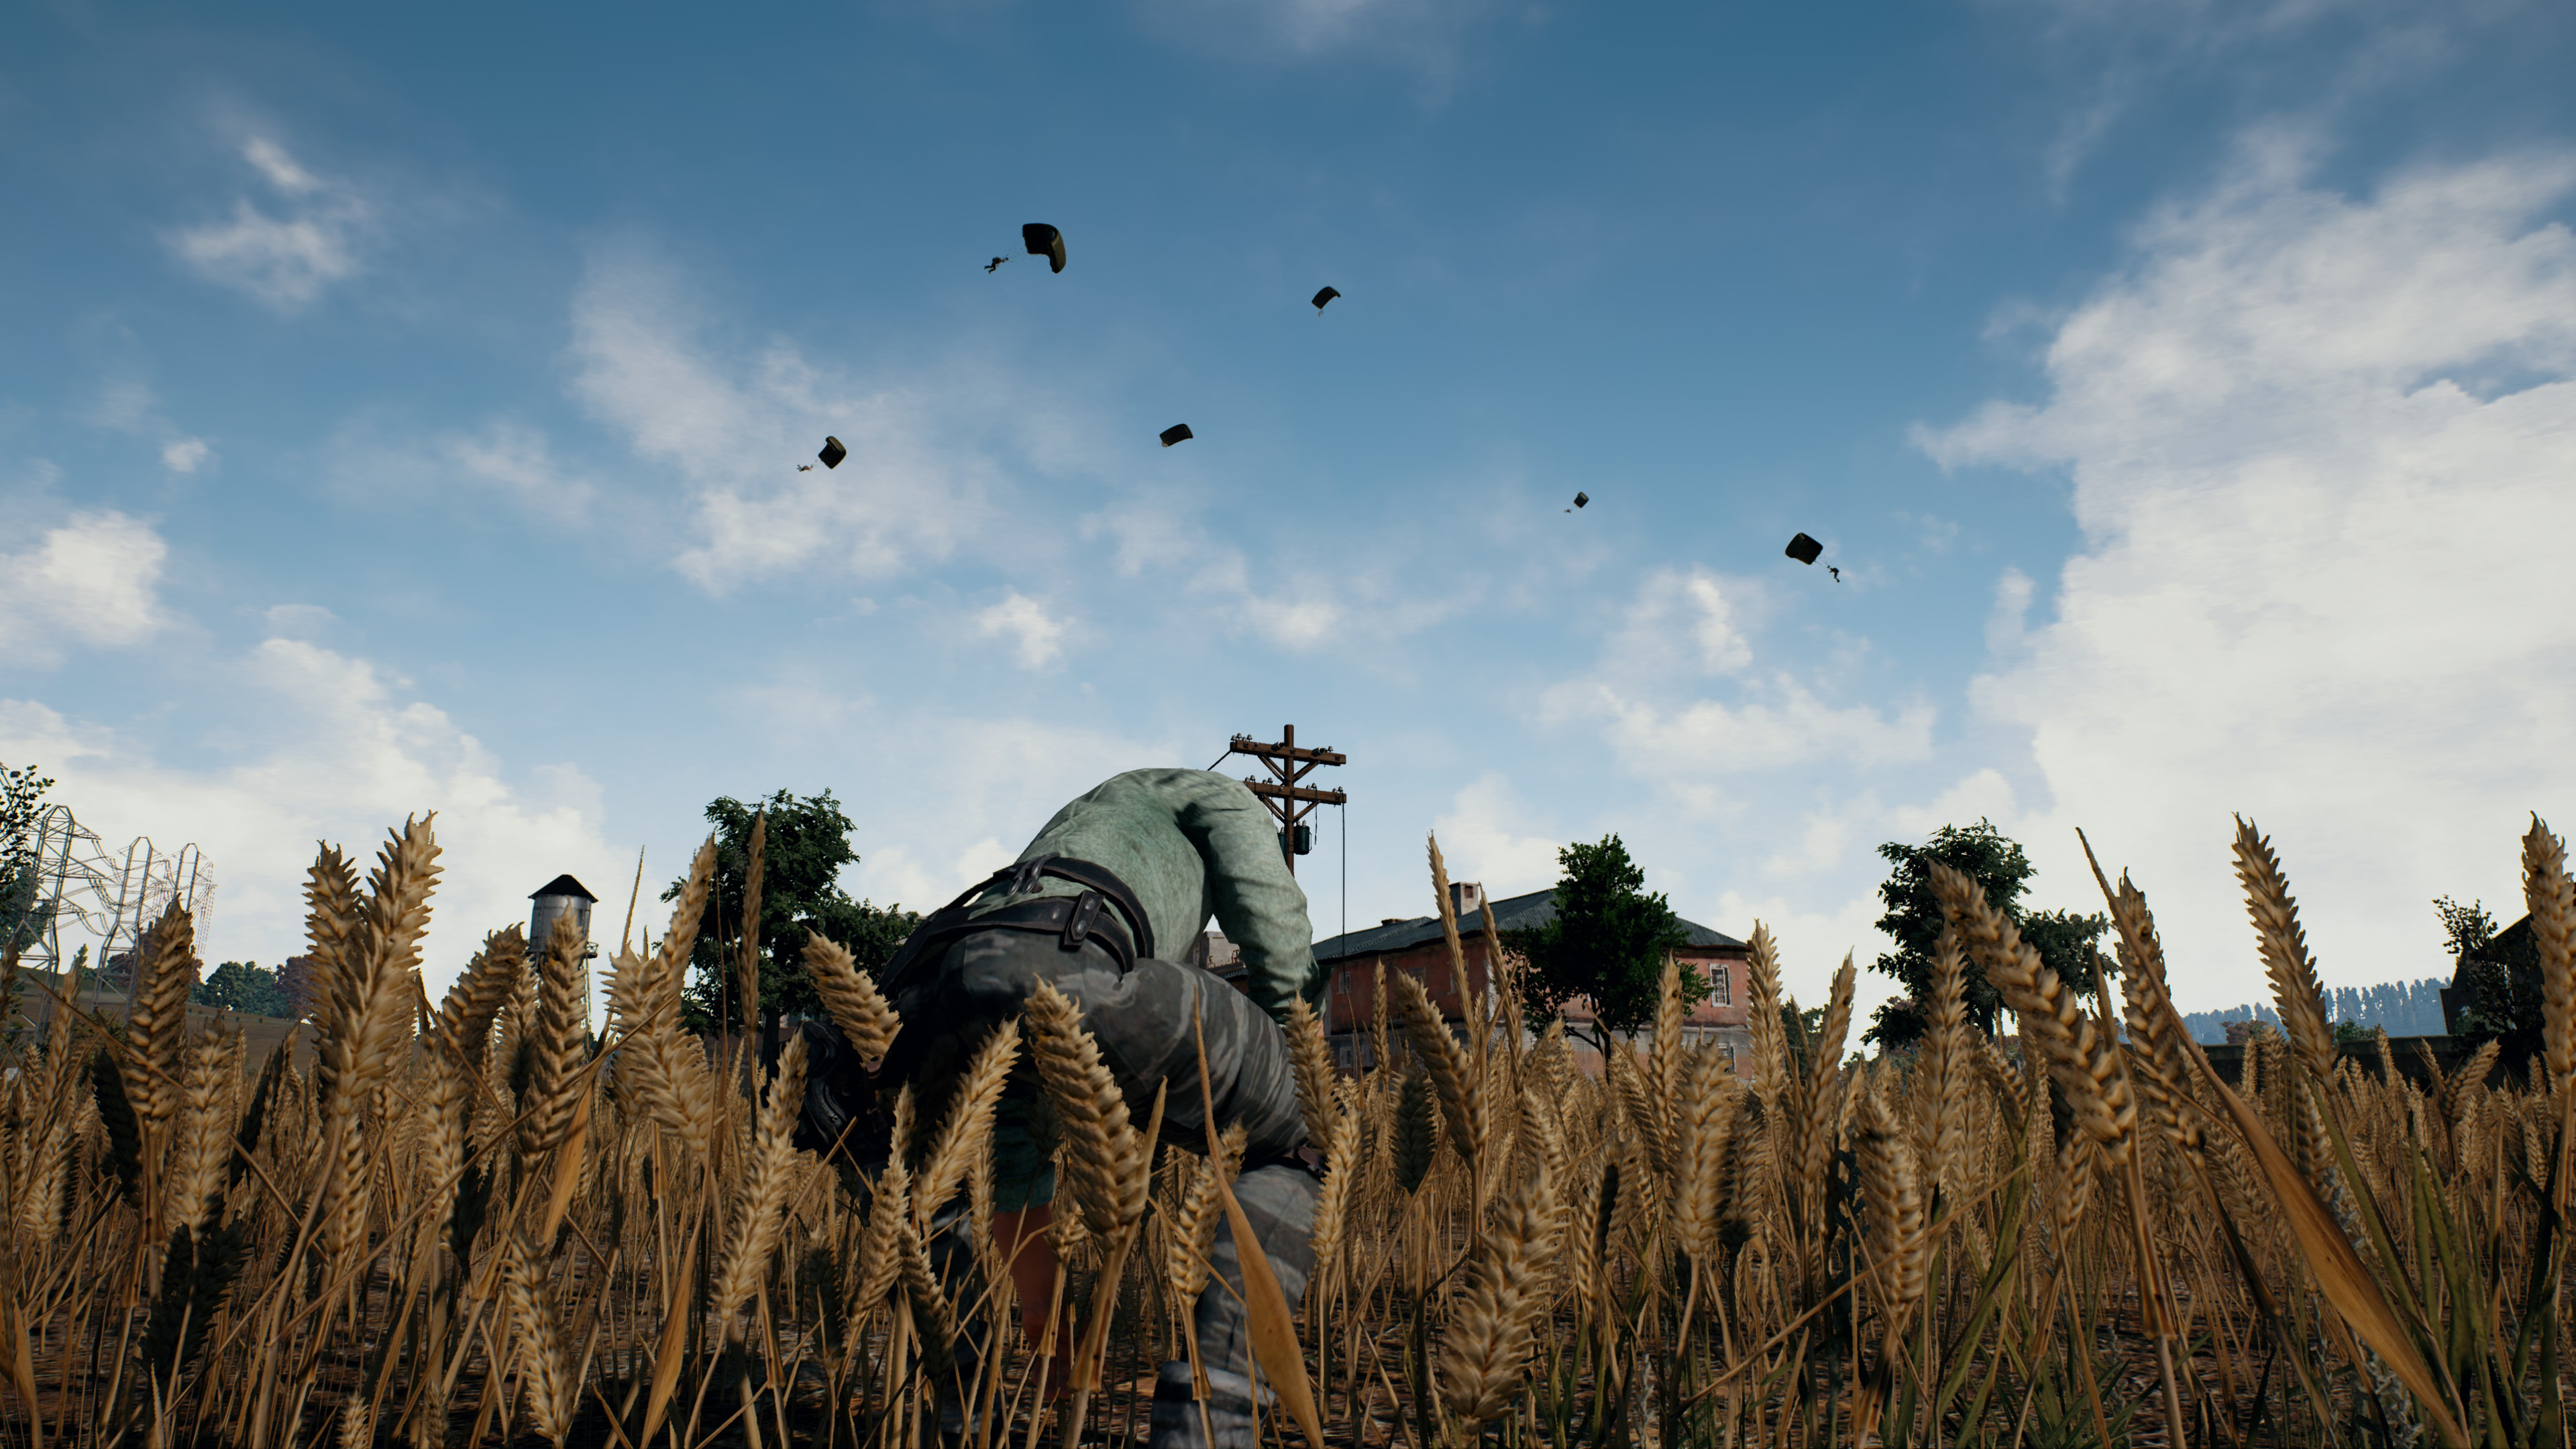 Pubg Hd Wallpaper 4k For Laptop: Playerunknown's Battlegrounds 4K Screenshots: High-Res